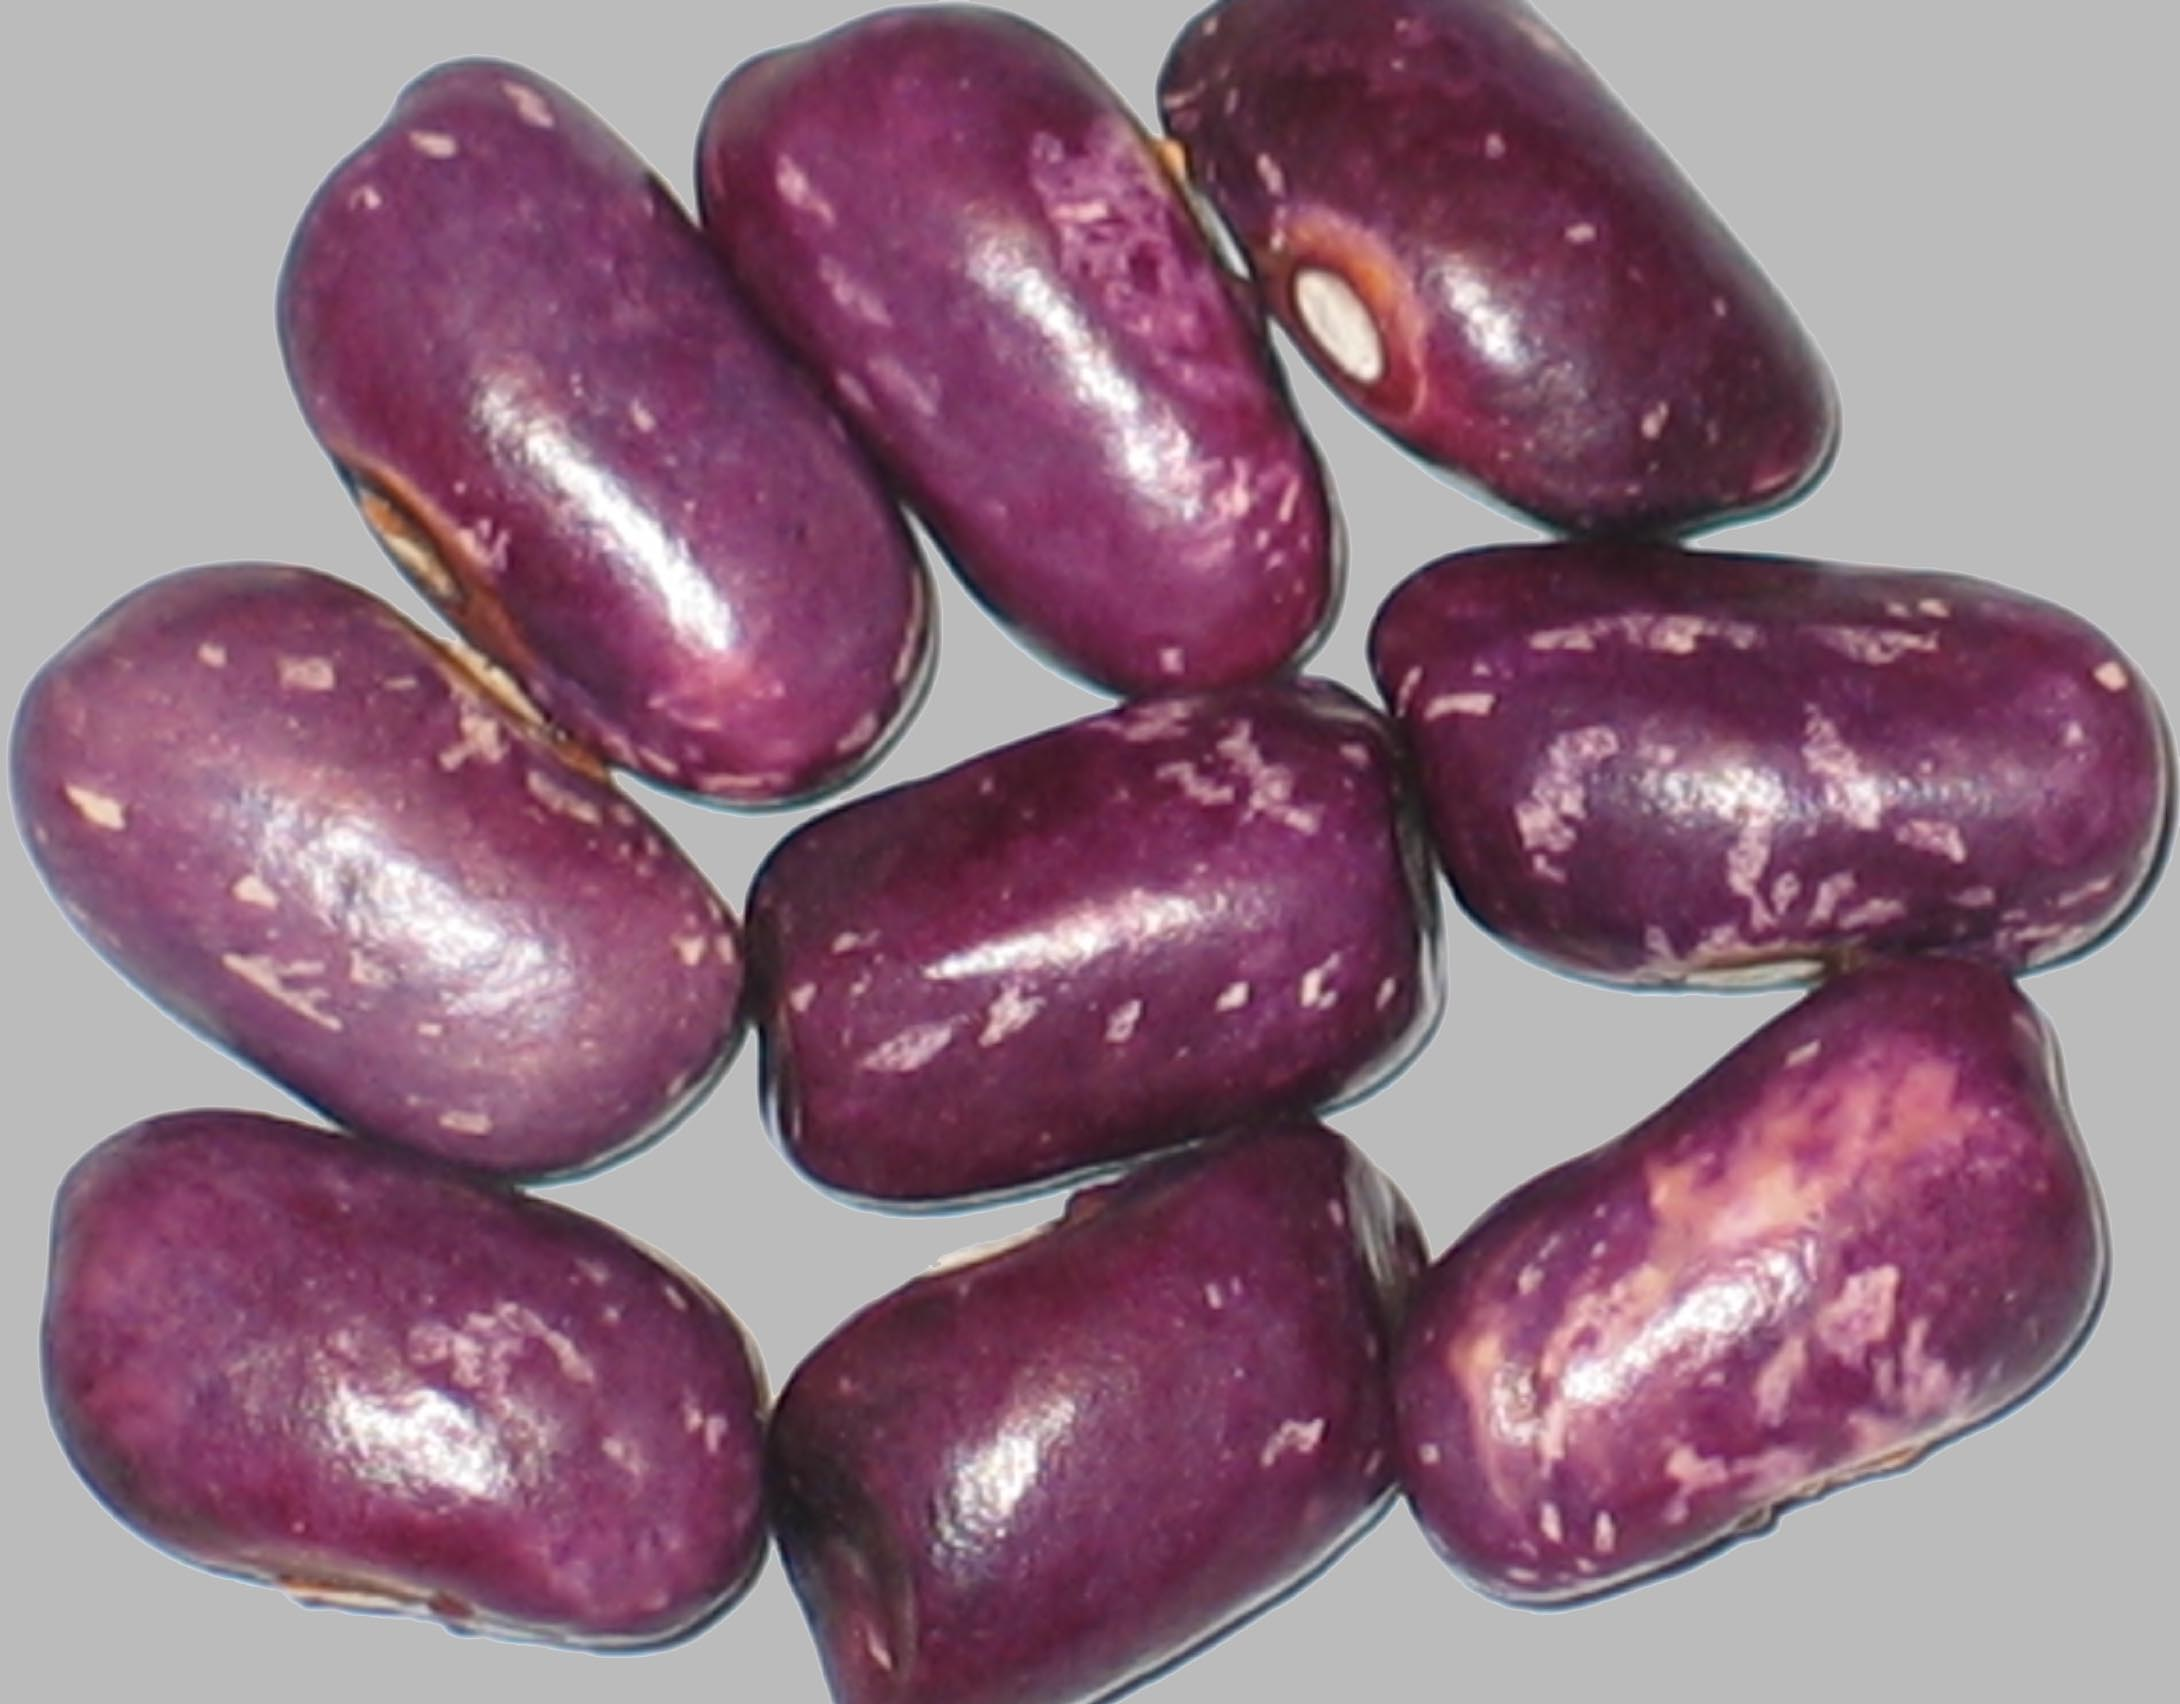 image of Prince Purple beans